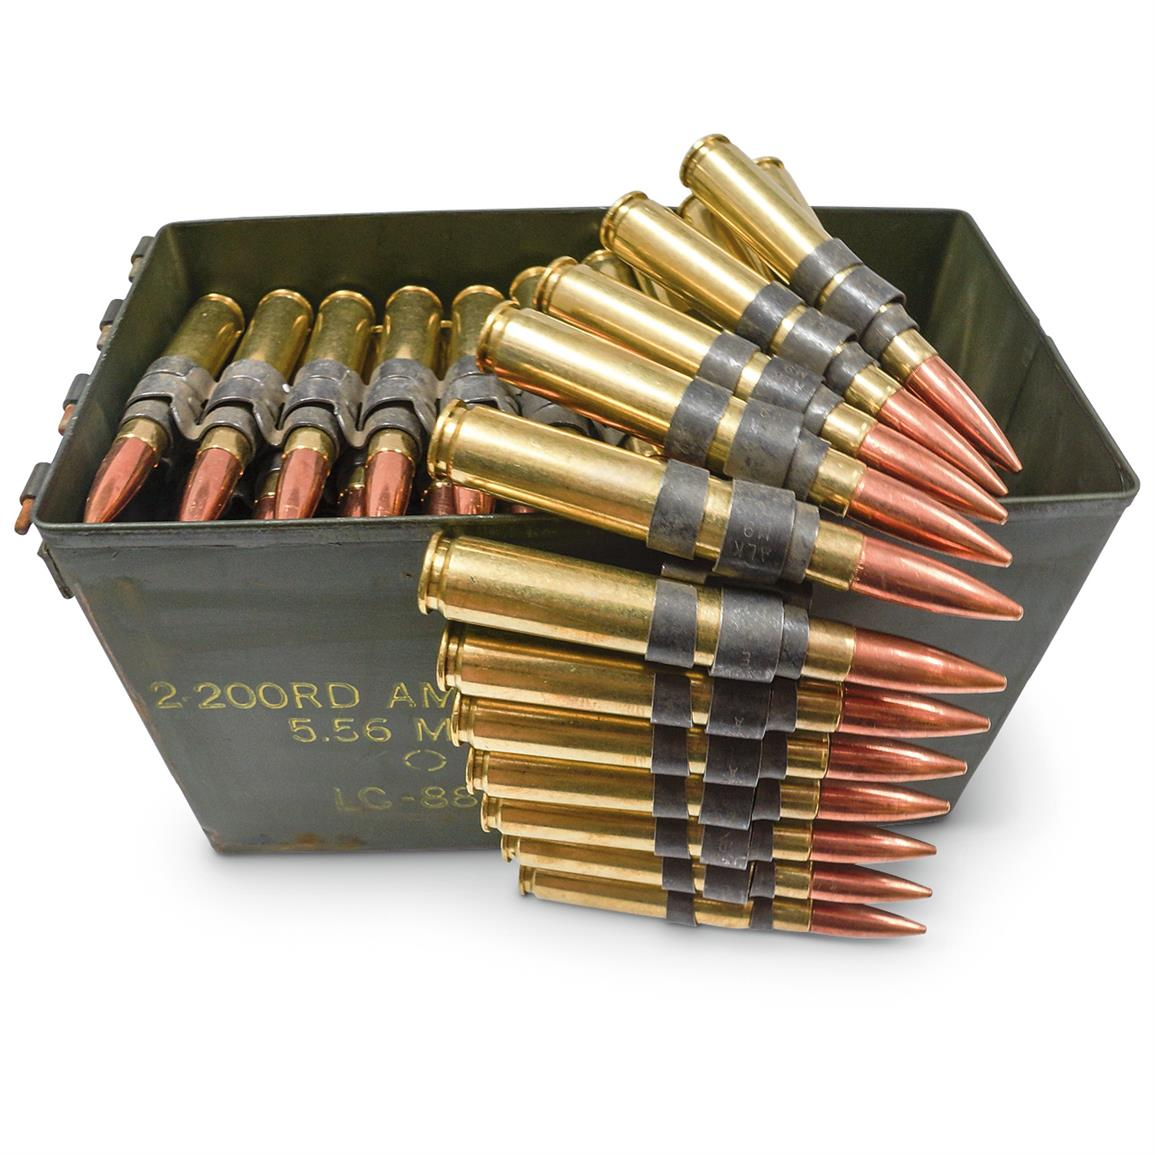 Lake City, .50 BMG, 647 Grain, FMJ Ammo with Can, Remanufactured, 100 Linked Rounds